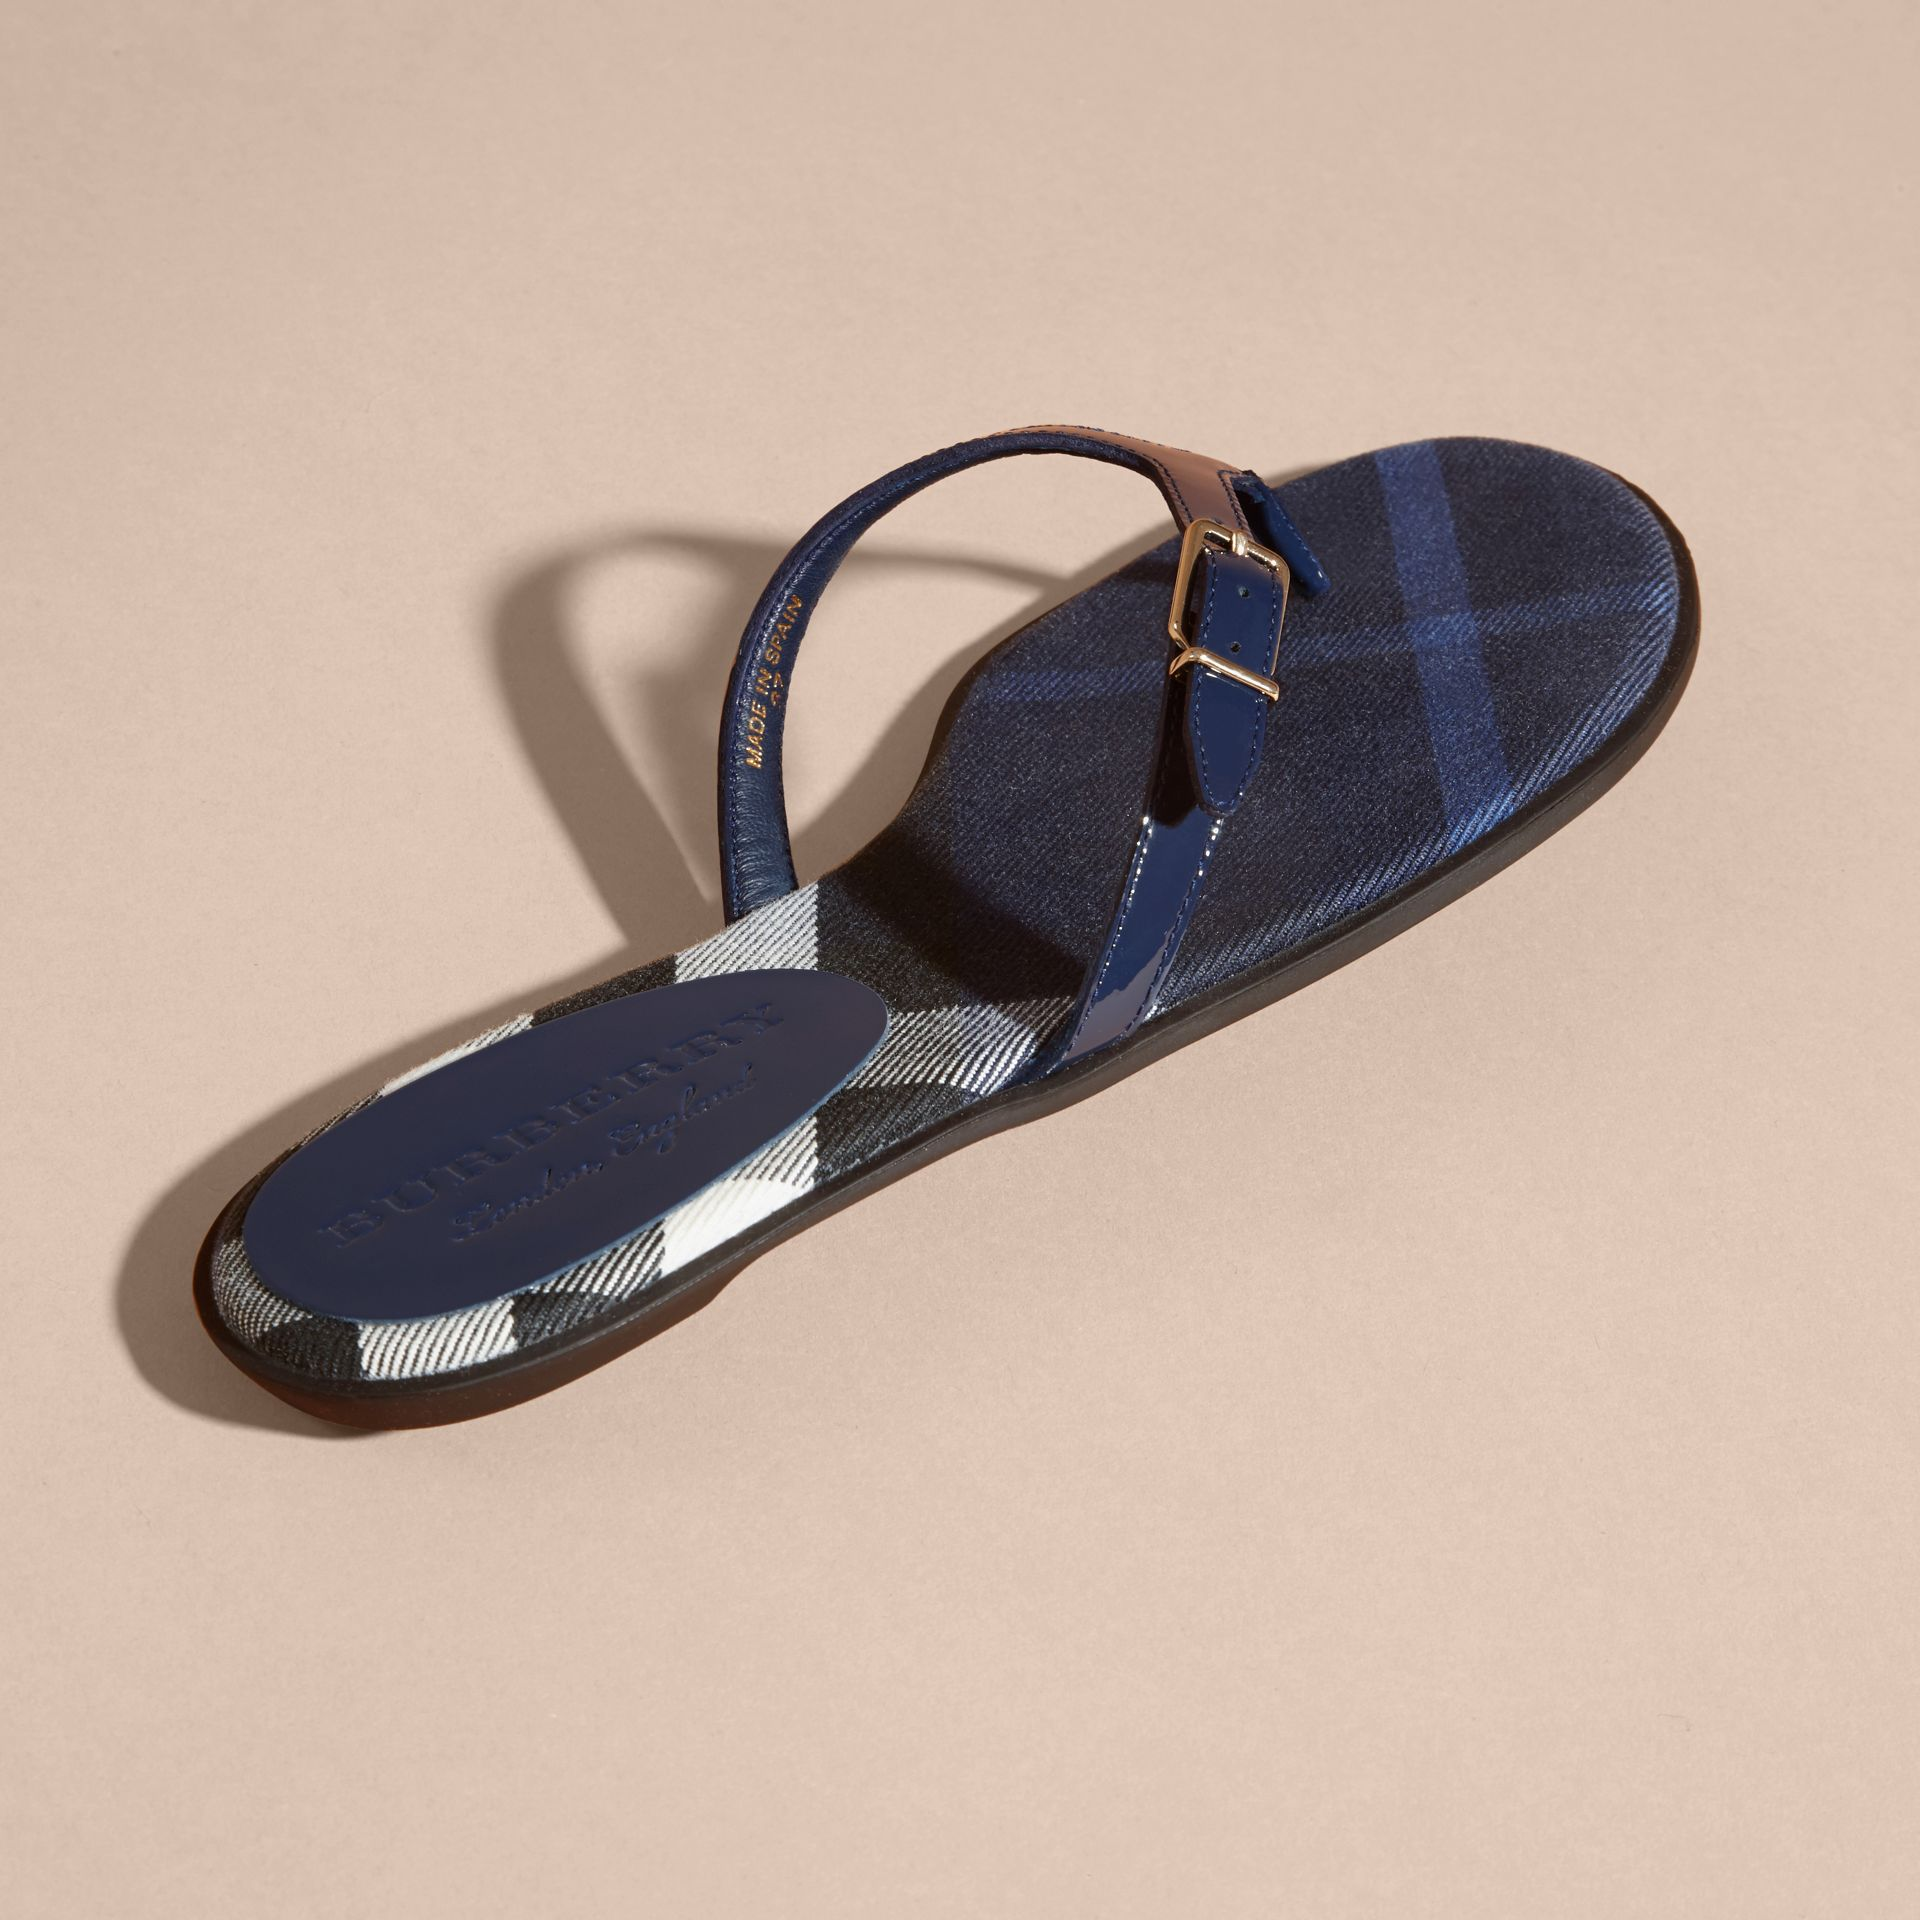 House Check and Patent Leather Sandals in Indigo Blue - Women | Burberry Hong Kong - gallery image 4